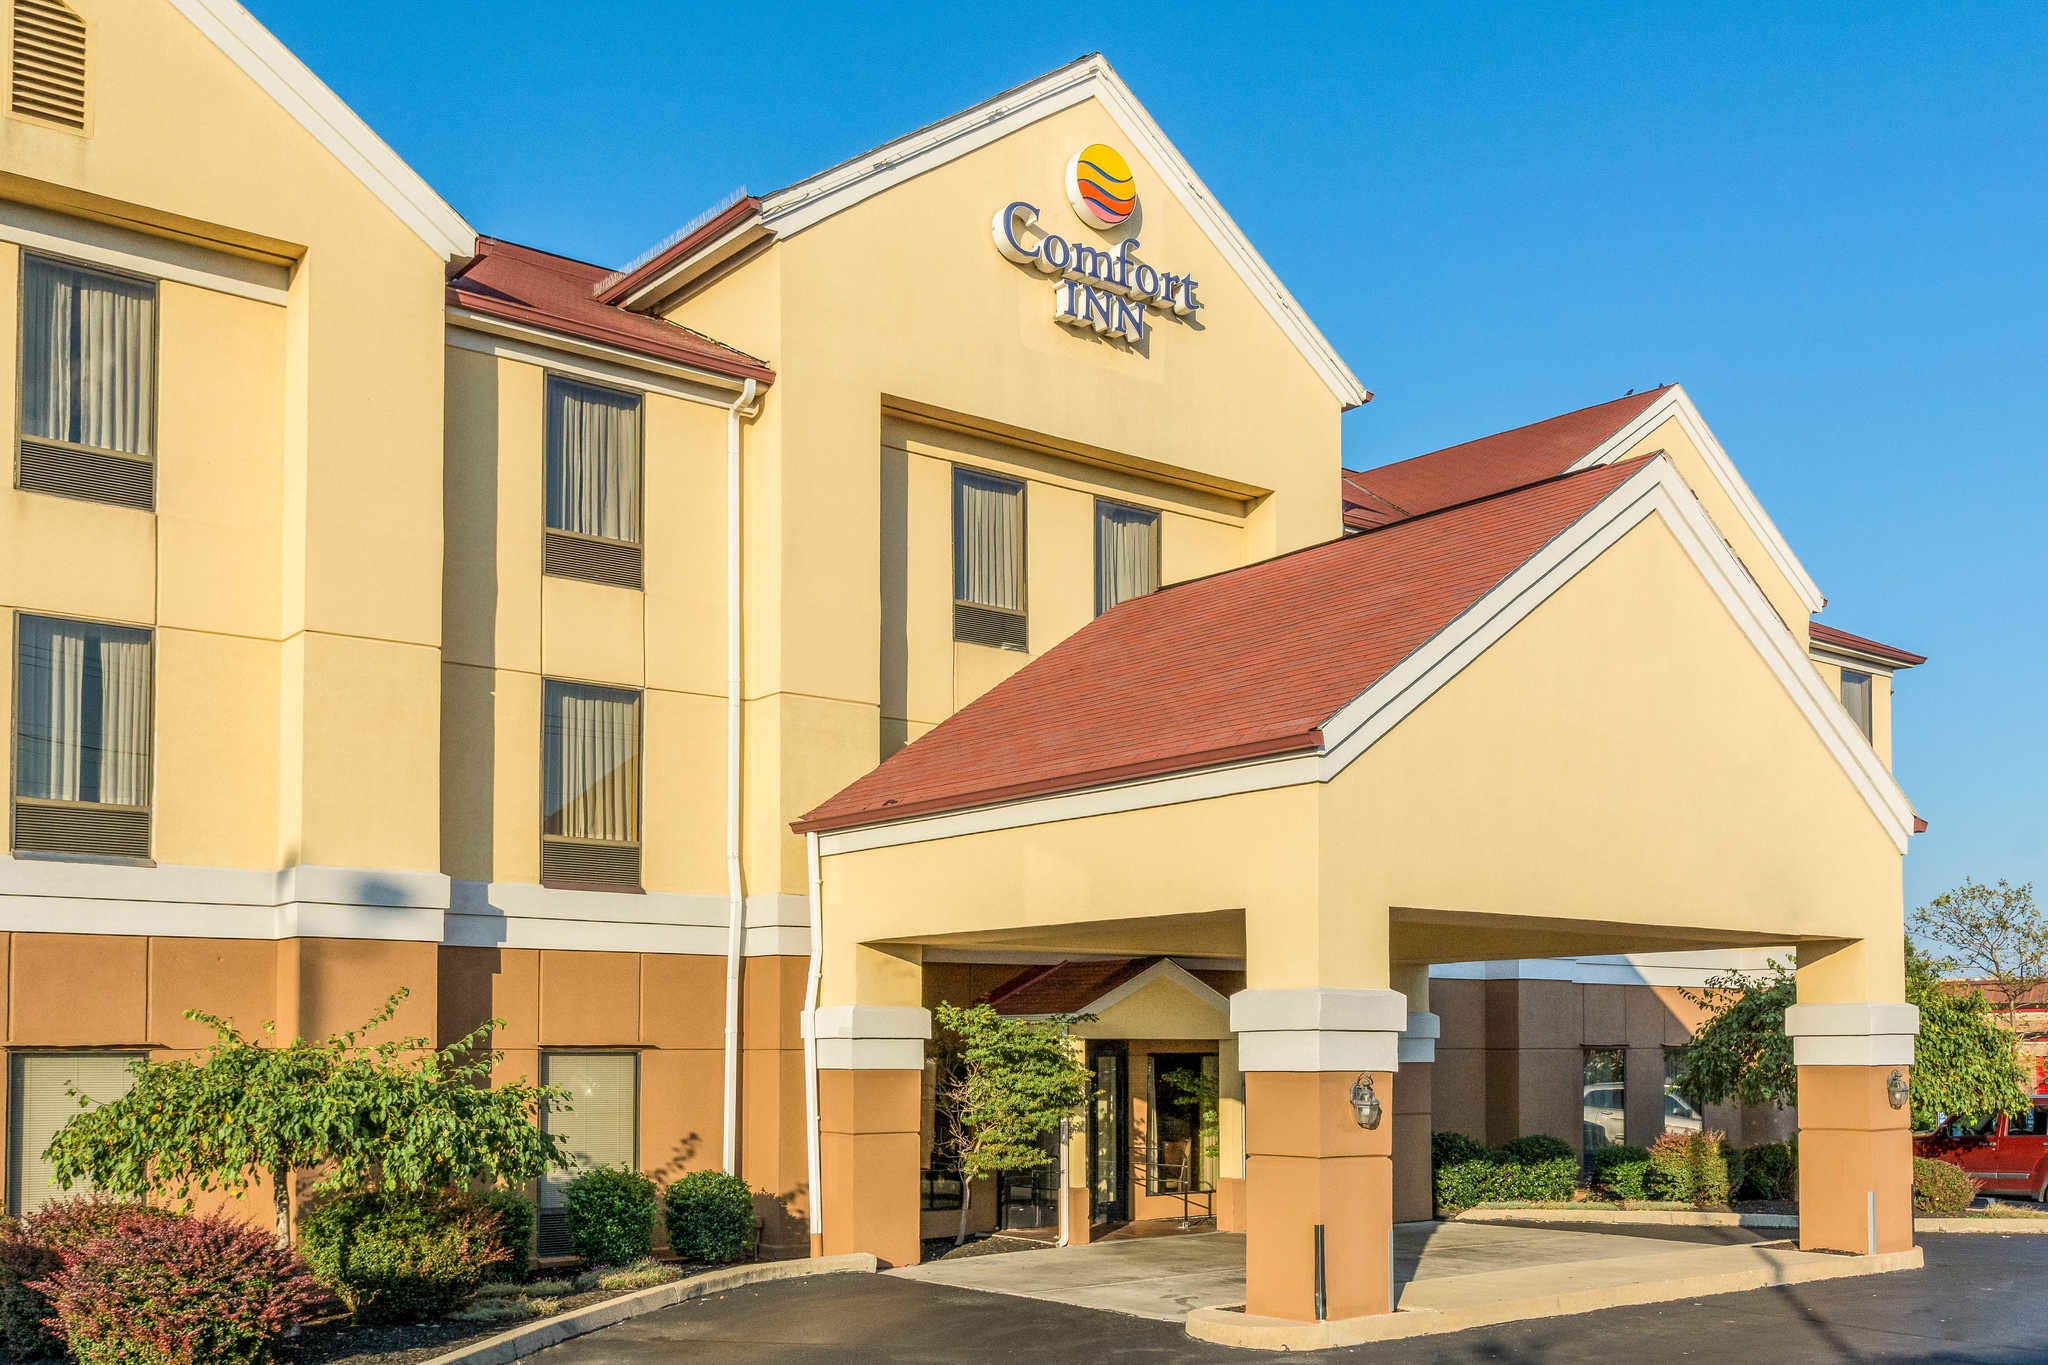 comfort inn airport turfway road florence kentucky ky. Black Bedroom Furniture Sets. Home Design Ideas